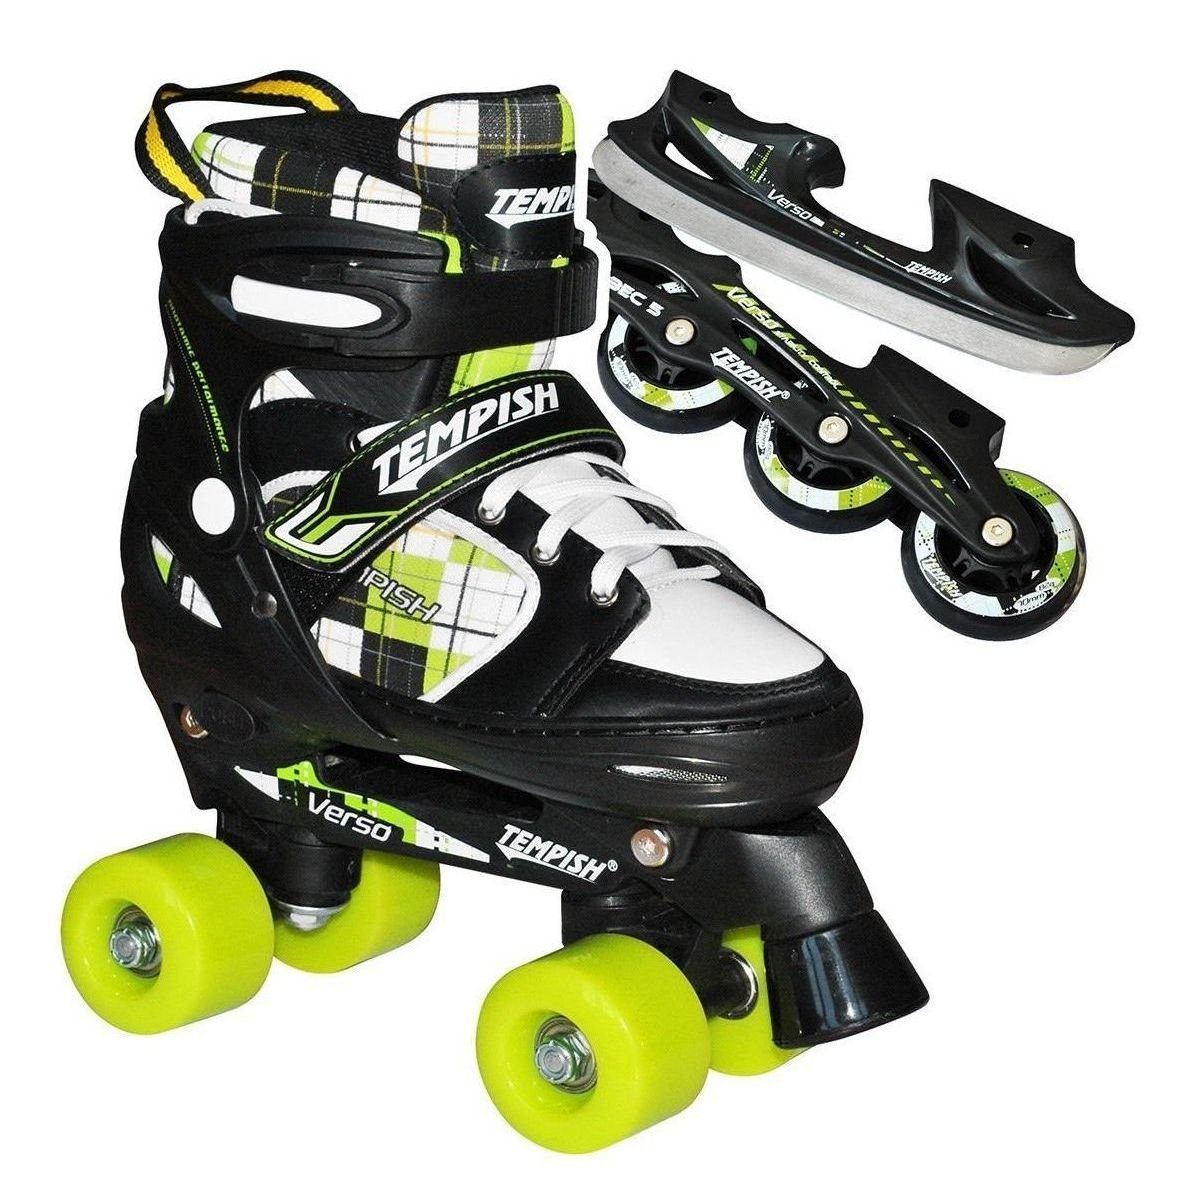 patines hockey tempish 3 en 1